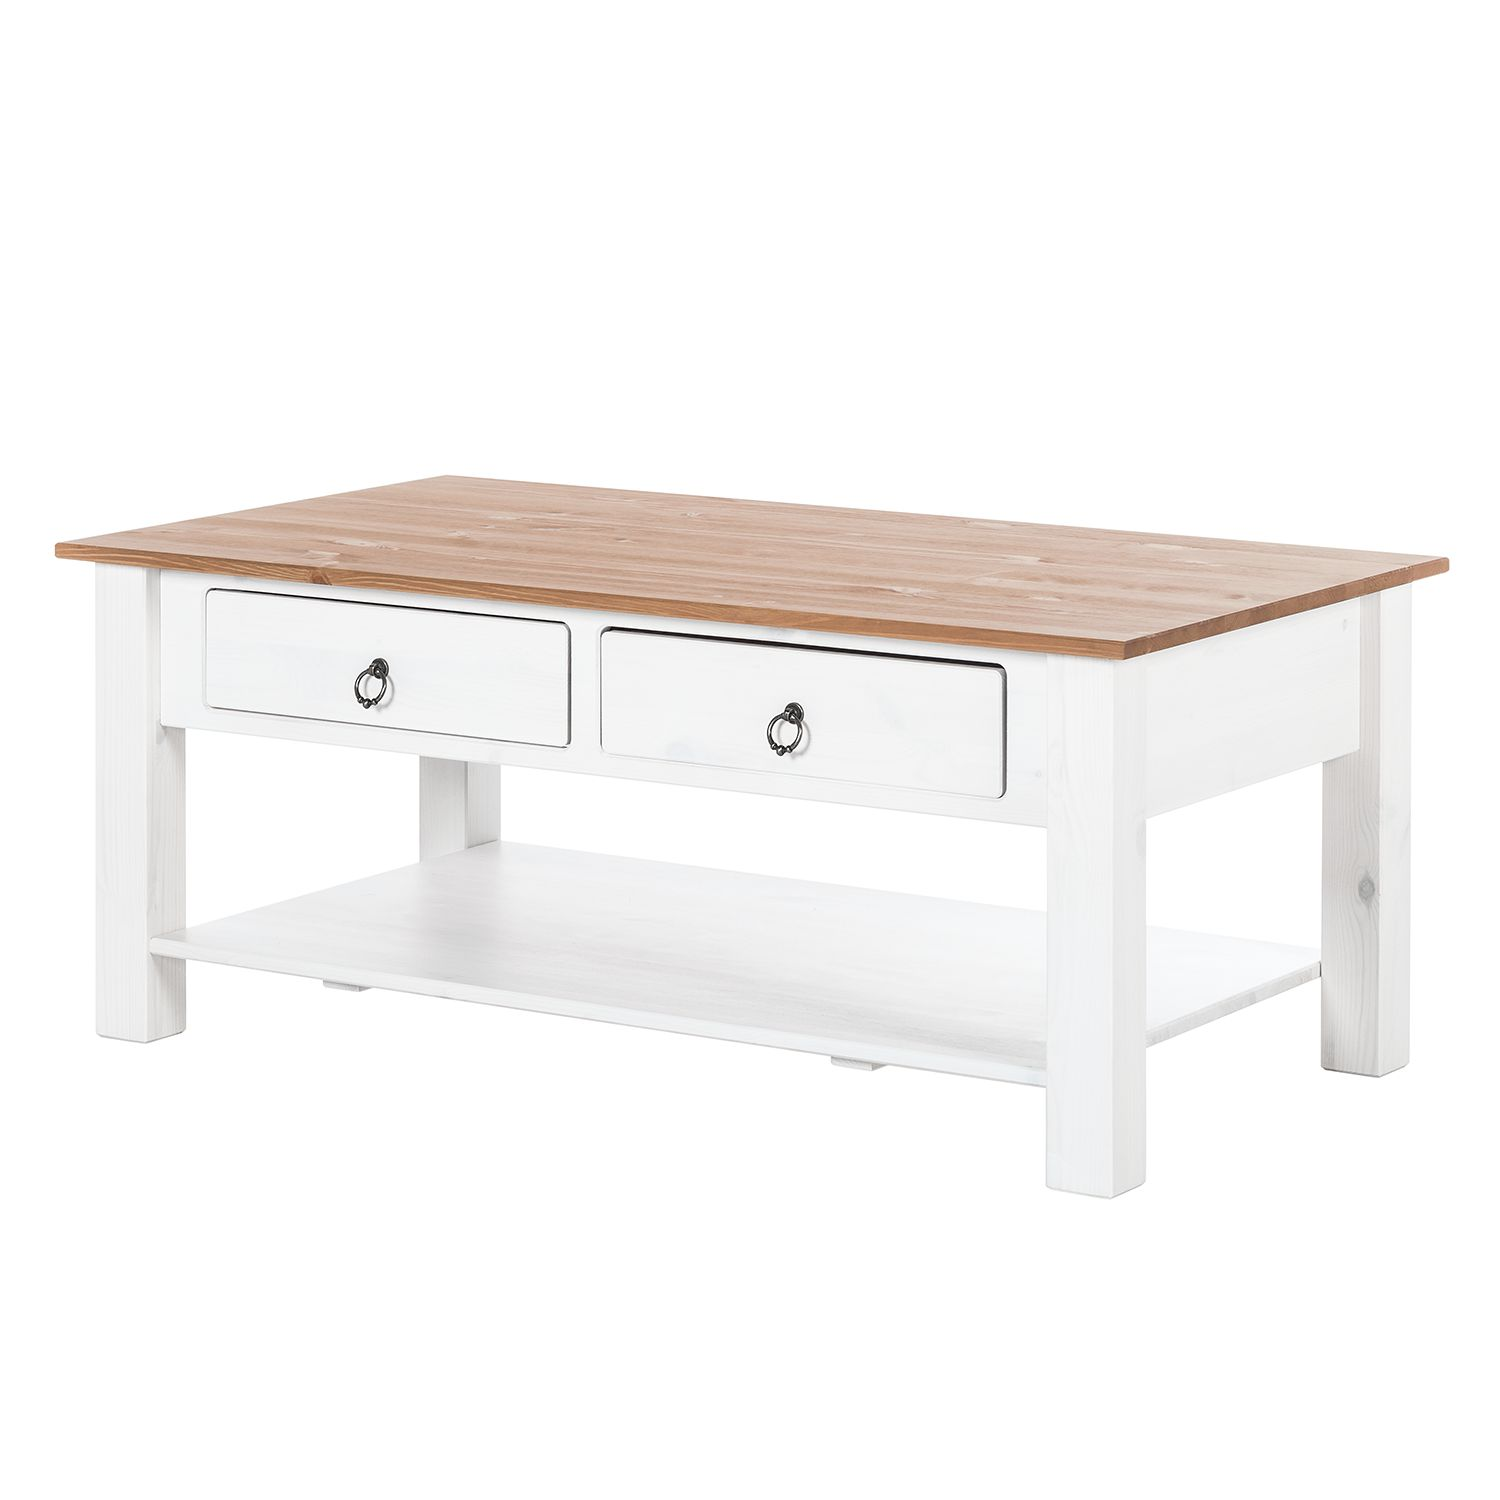 Table d'appoint Valmer II - Pin massif Couleur miel, Maison Belfort